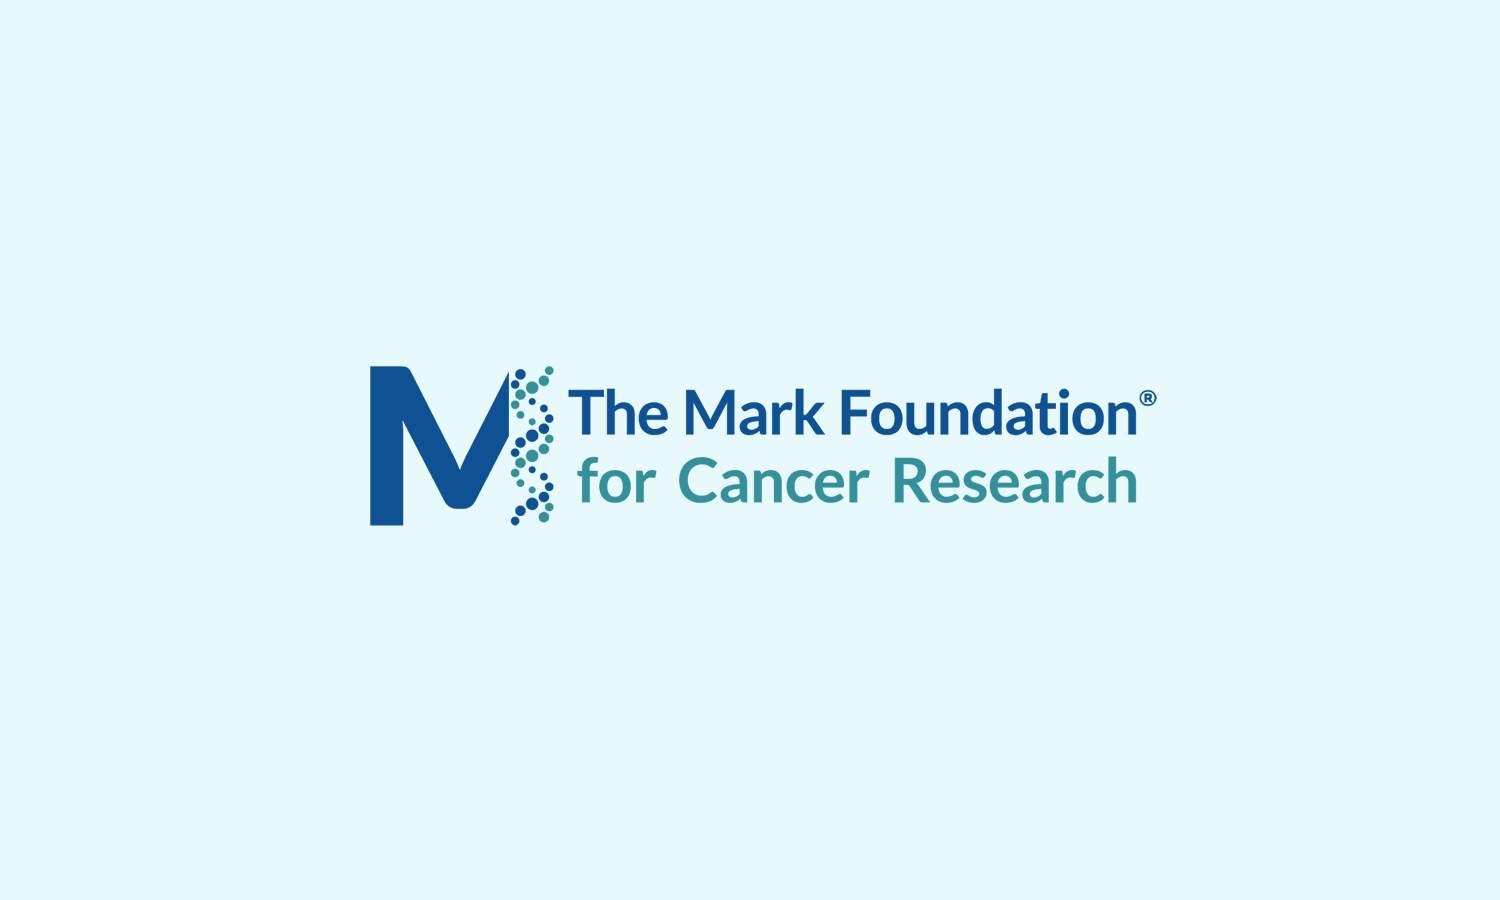 Mark Foundation grants drive research on pediatric cancers.